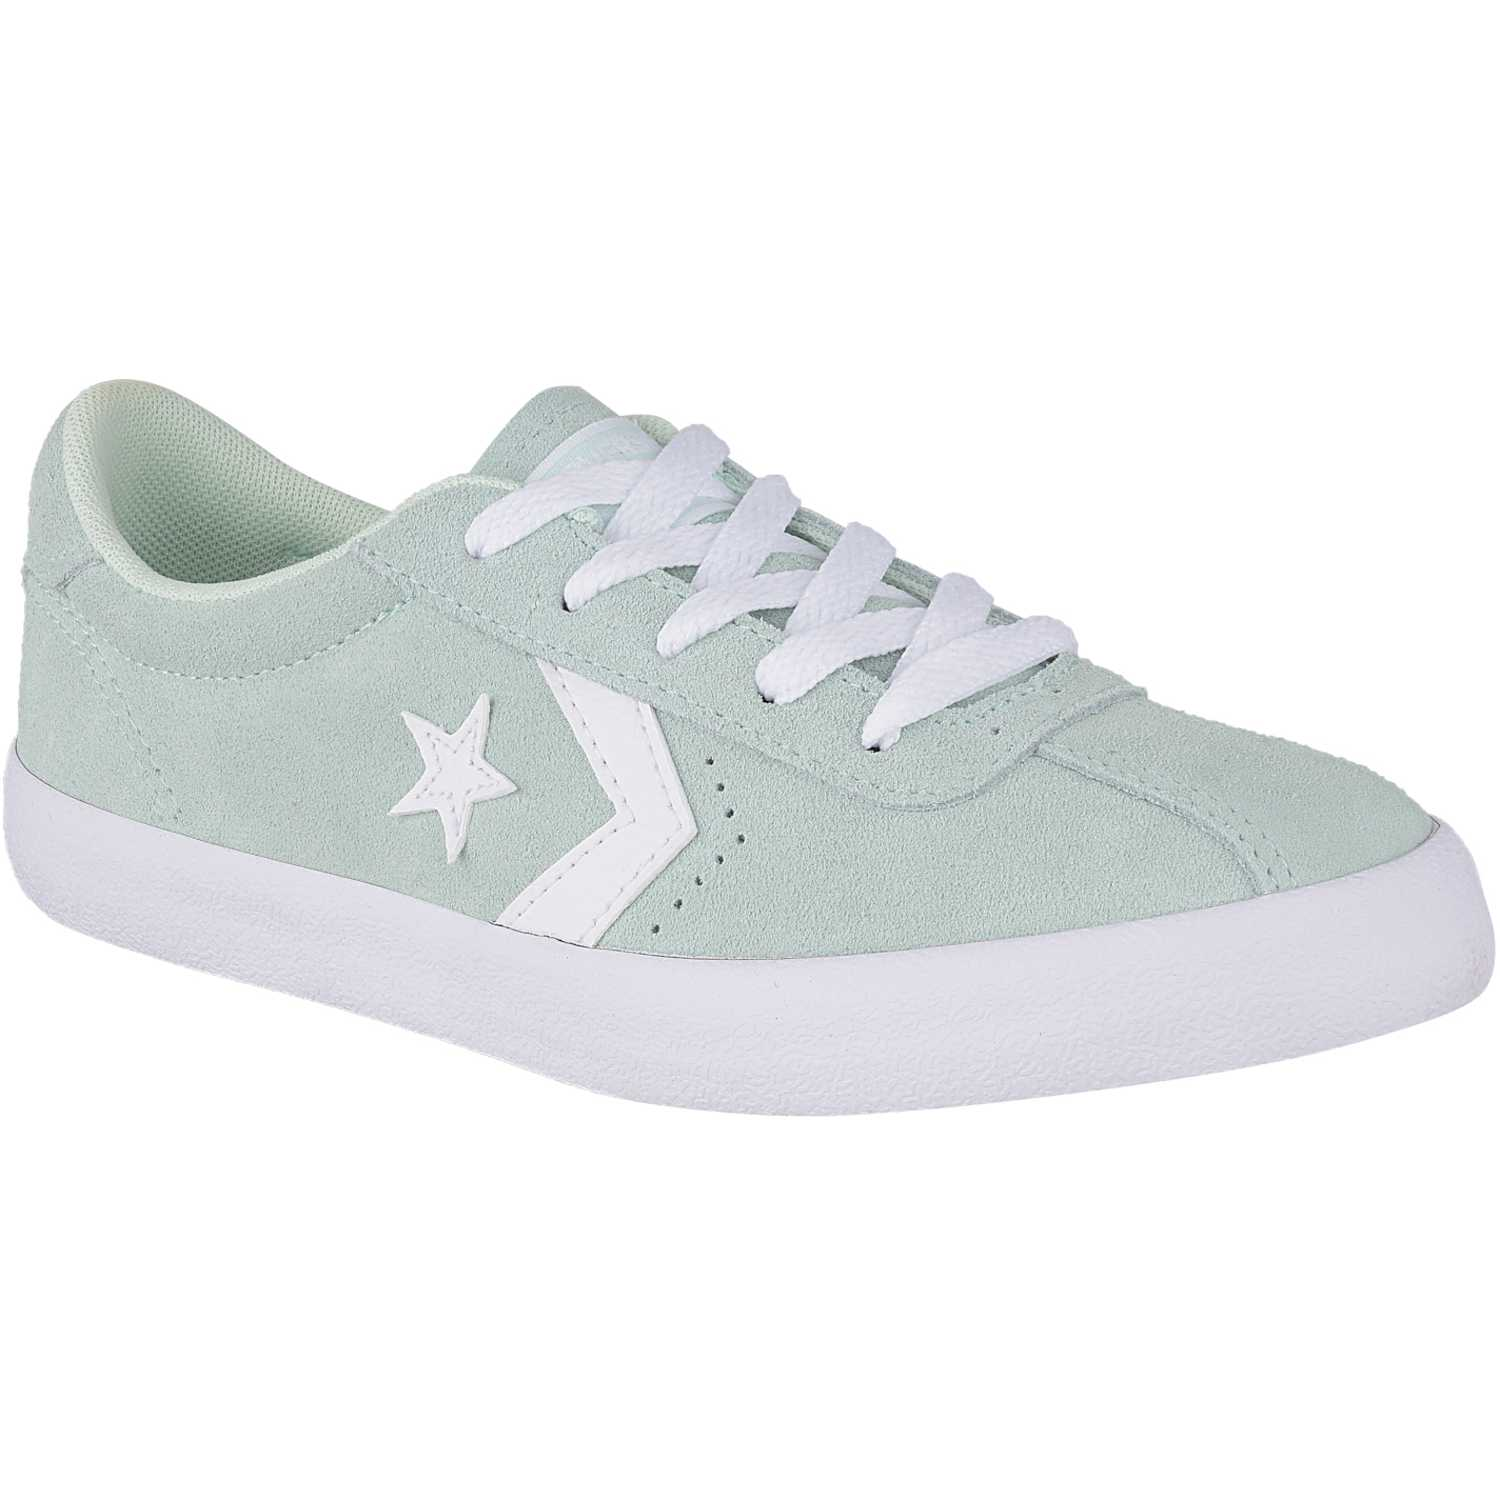 Converse break point suede Turquesa blanco Walking